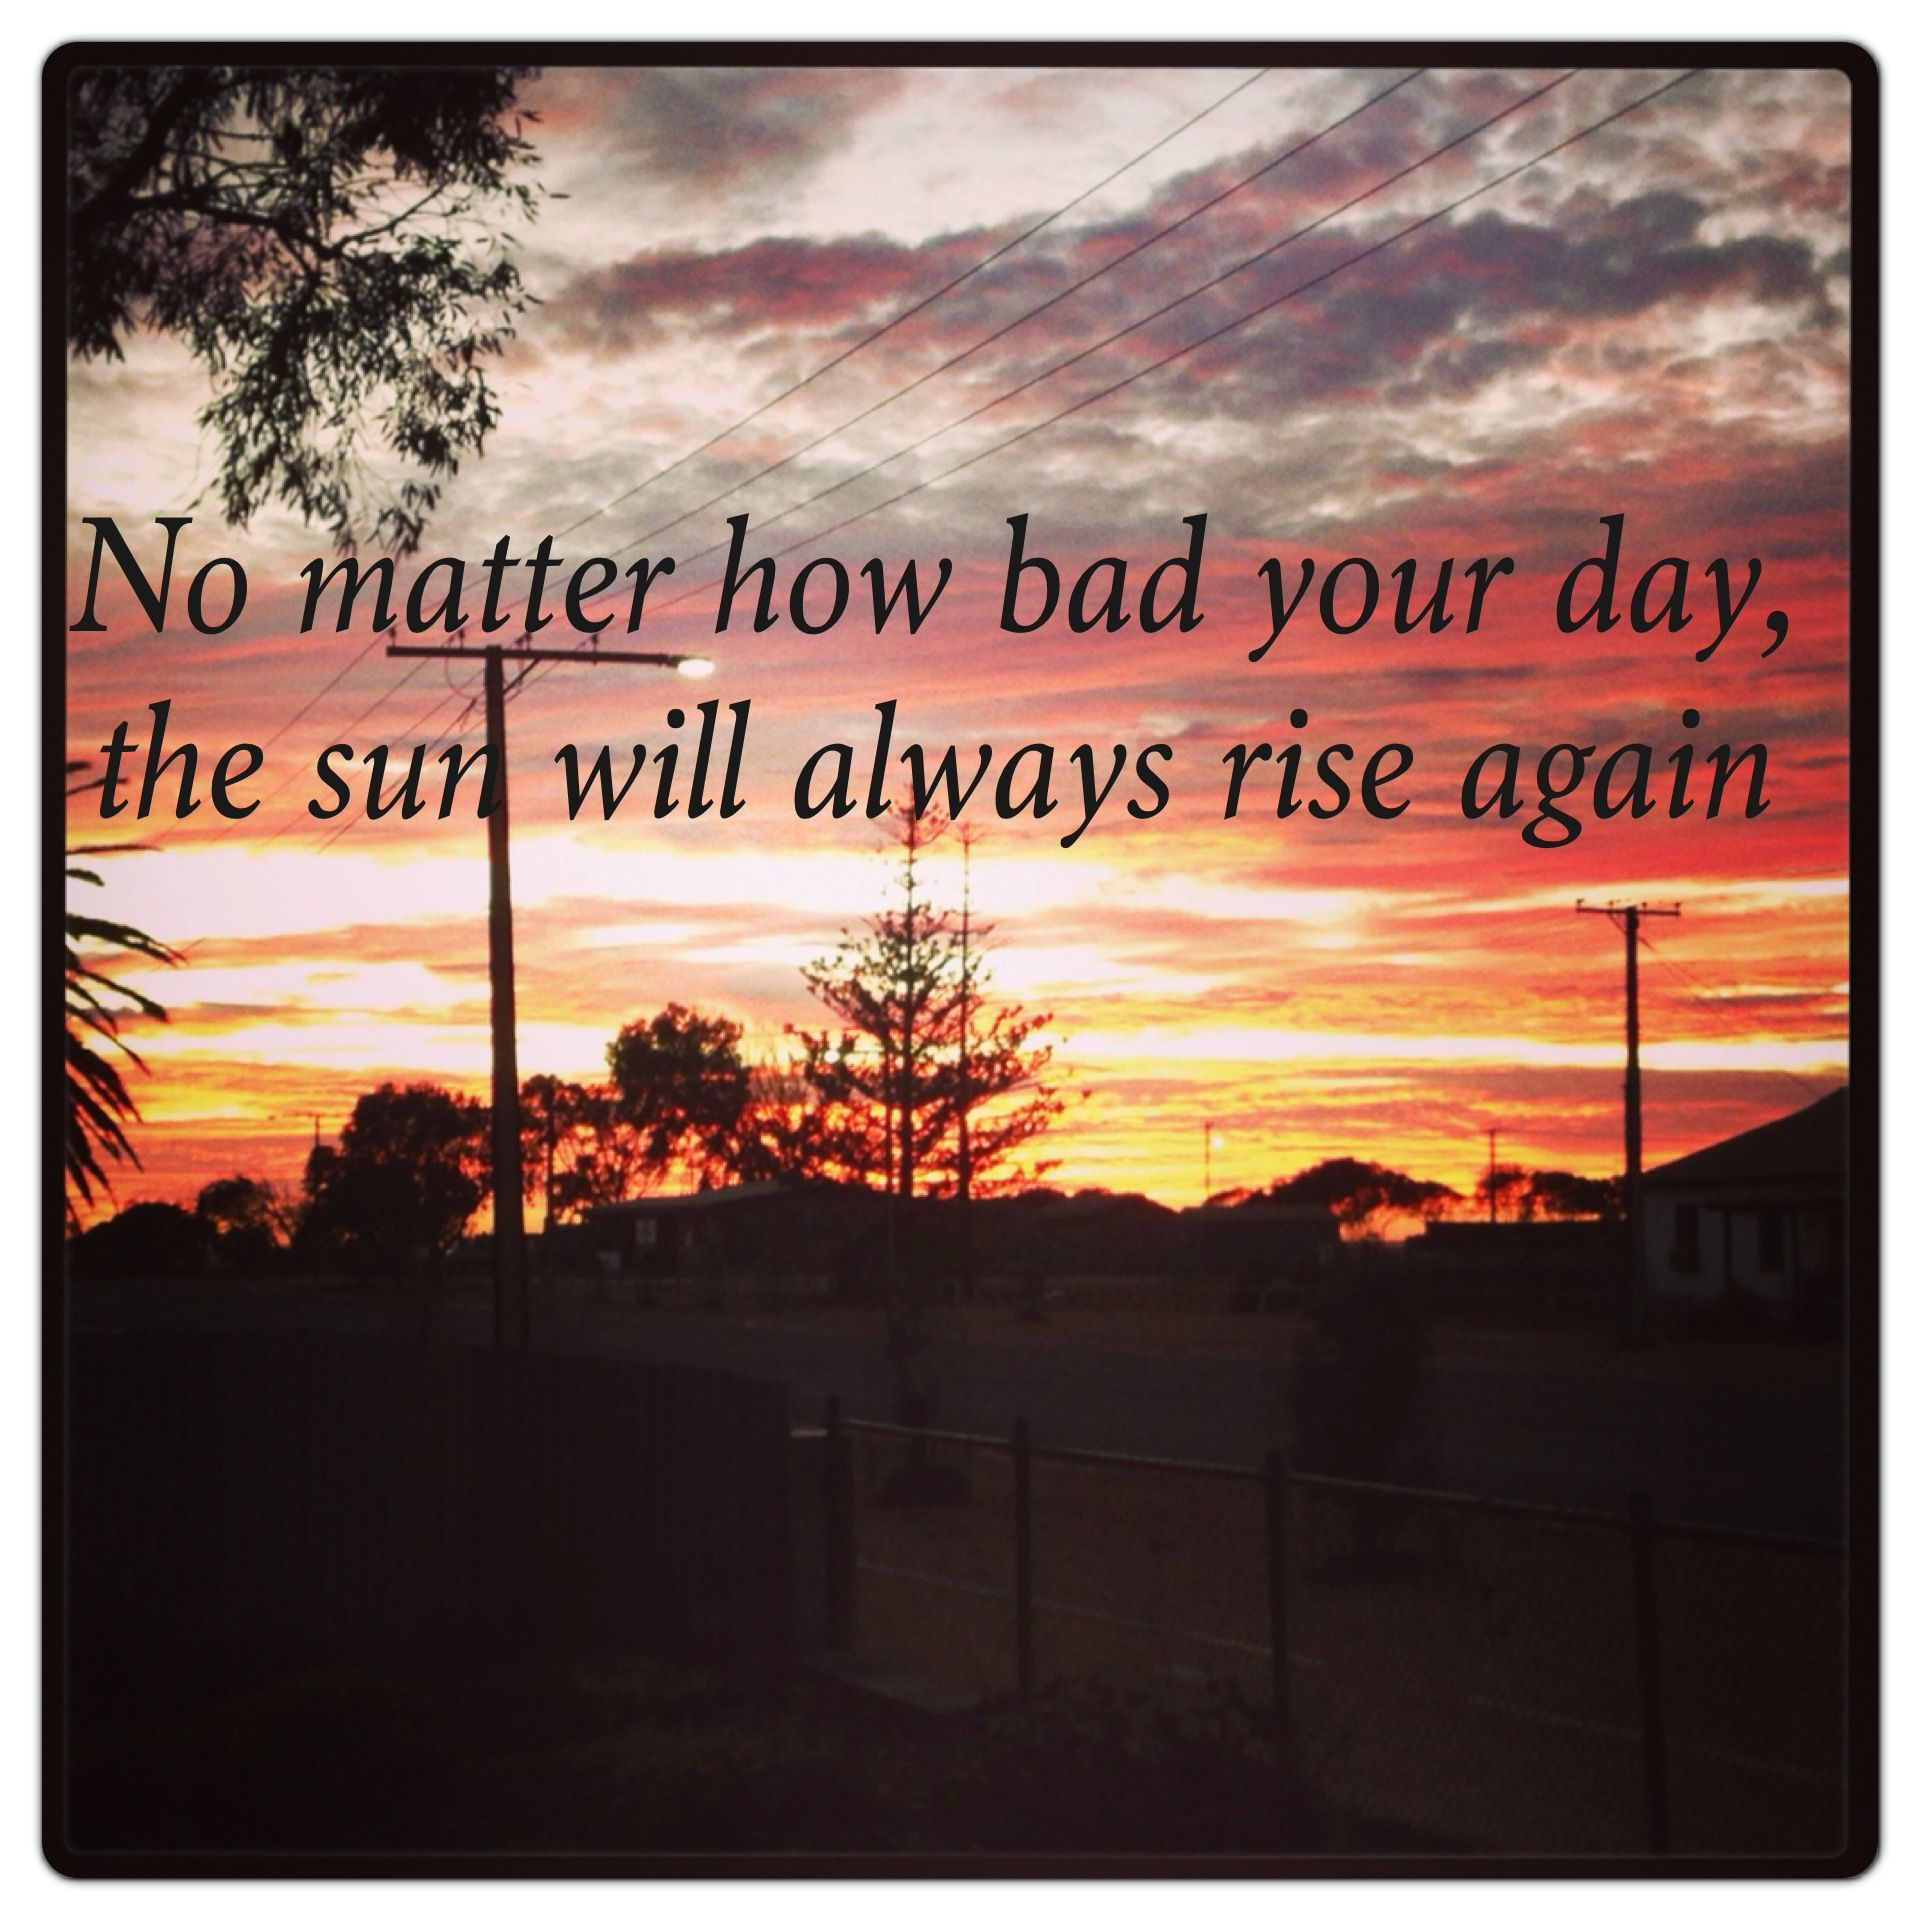 No matter how bad your day